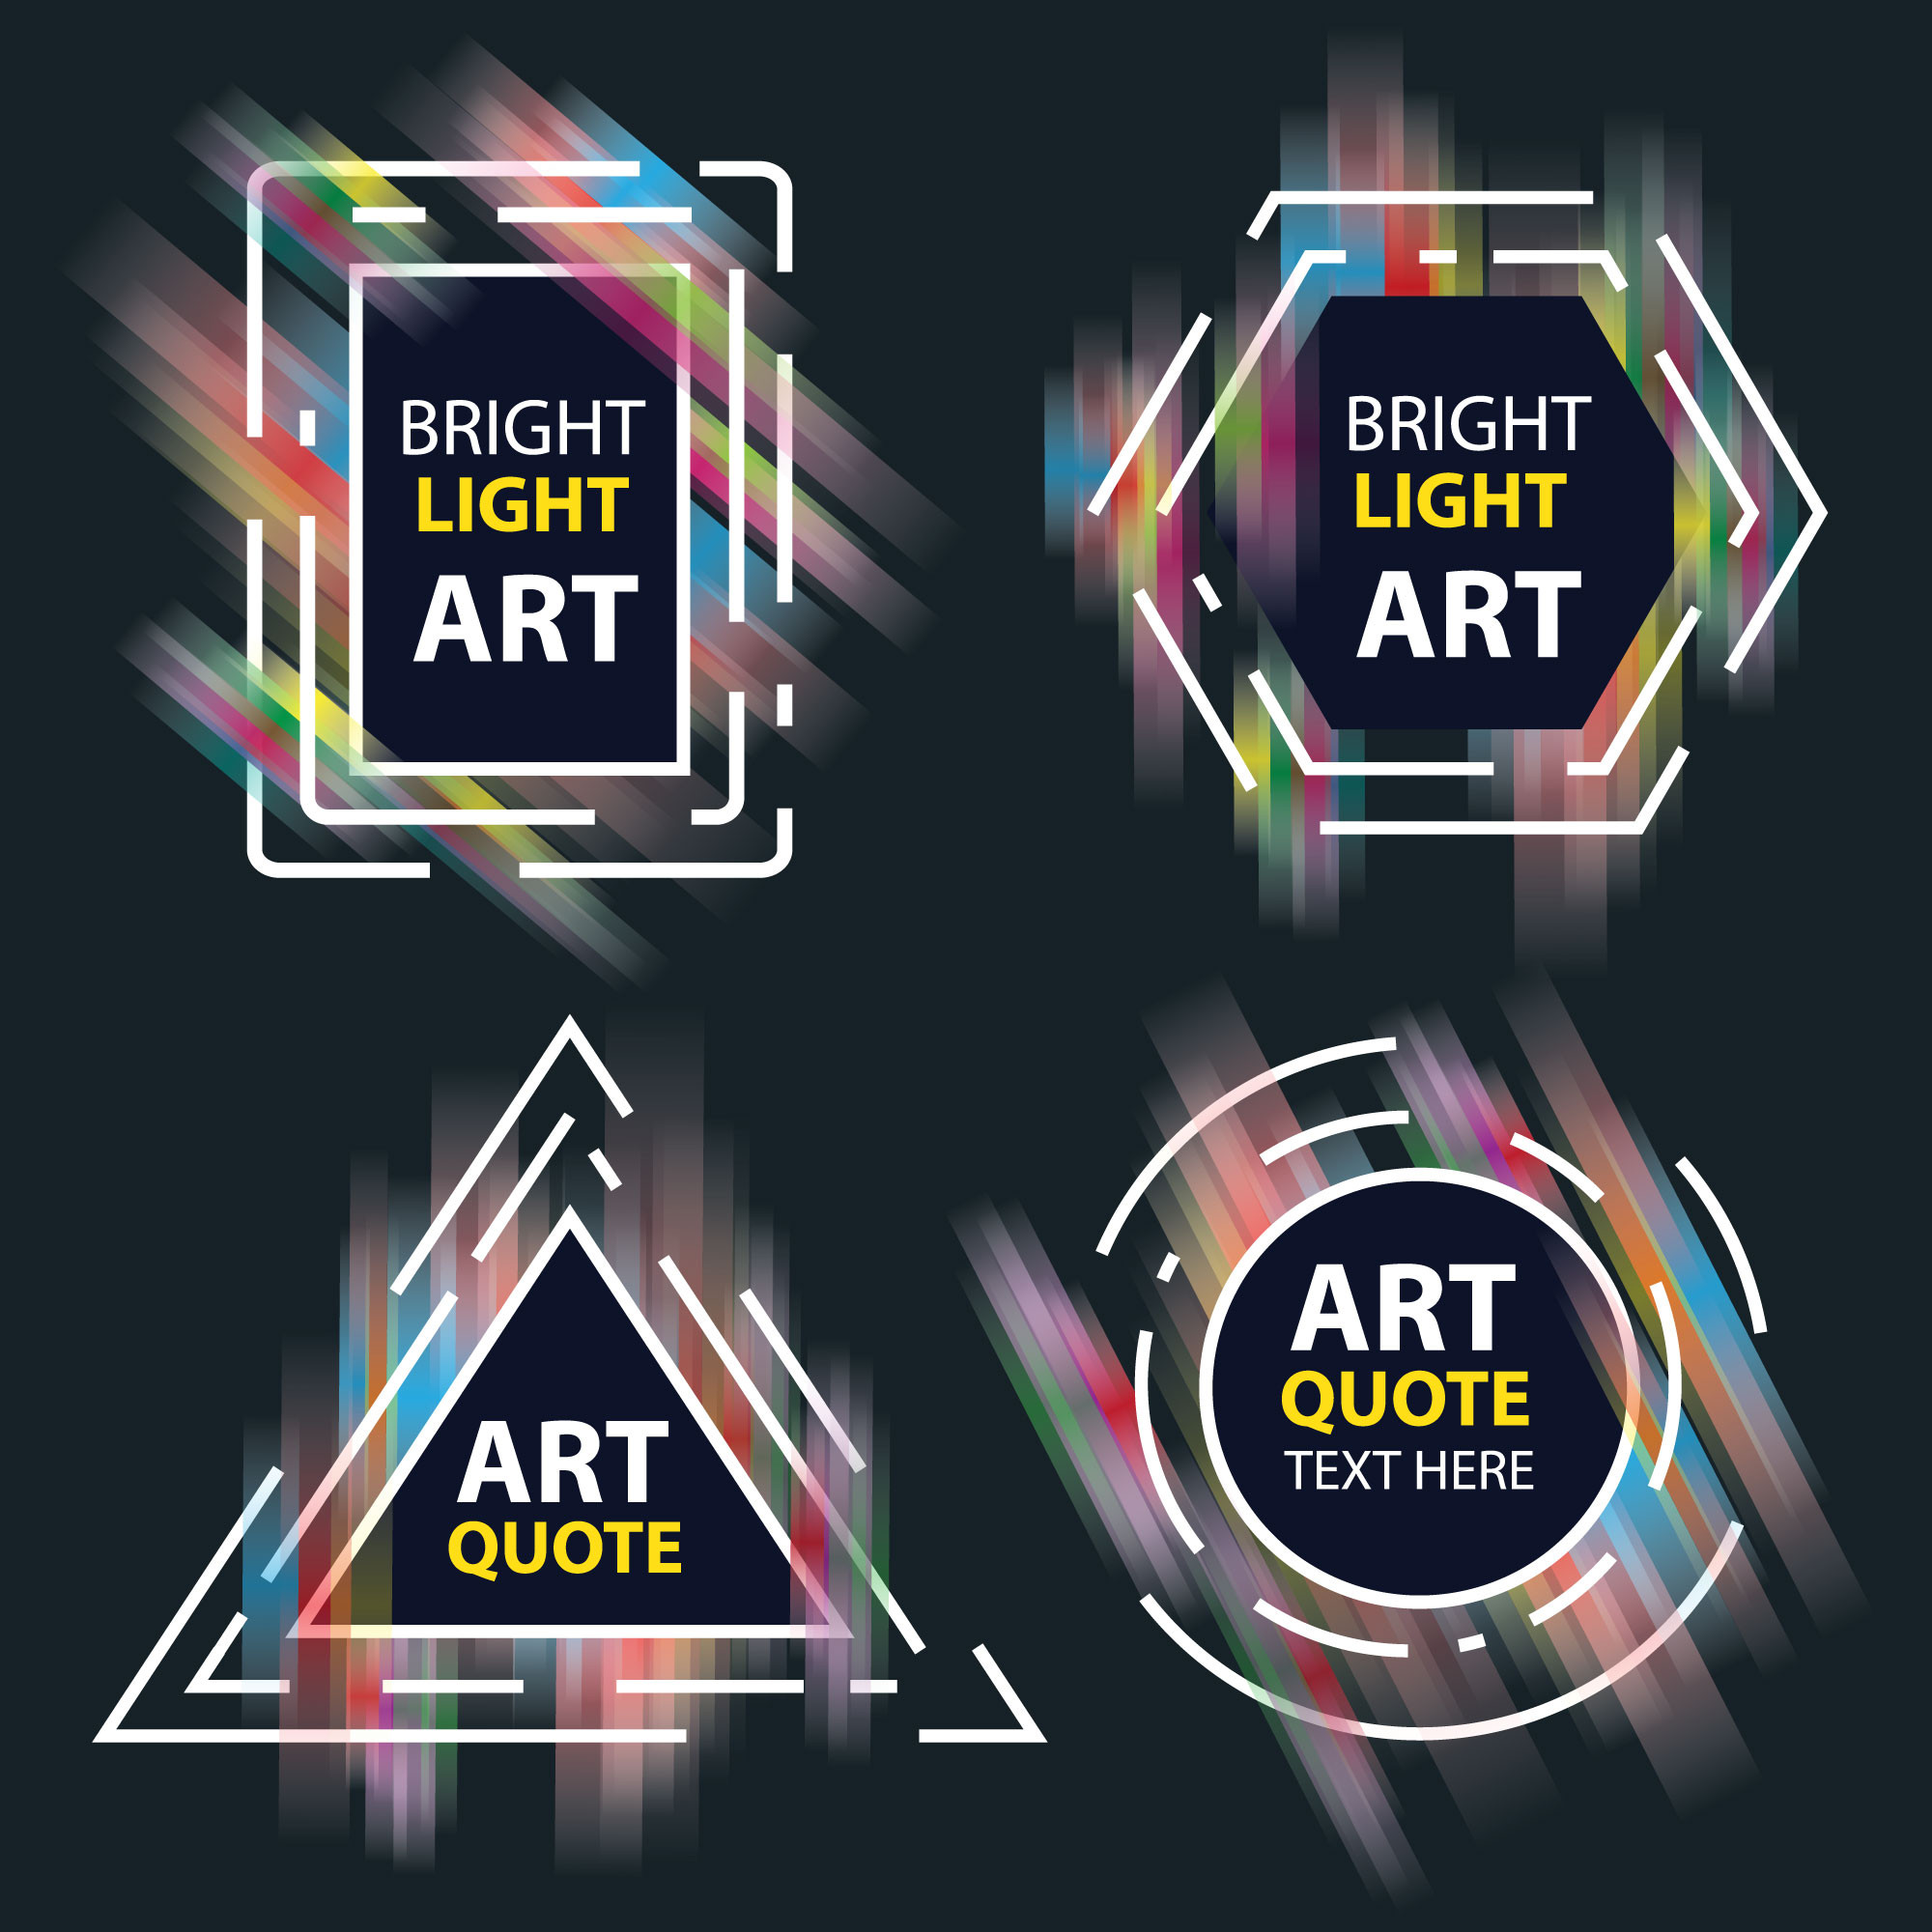 Abstract banners with bright light detailed